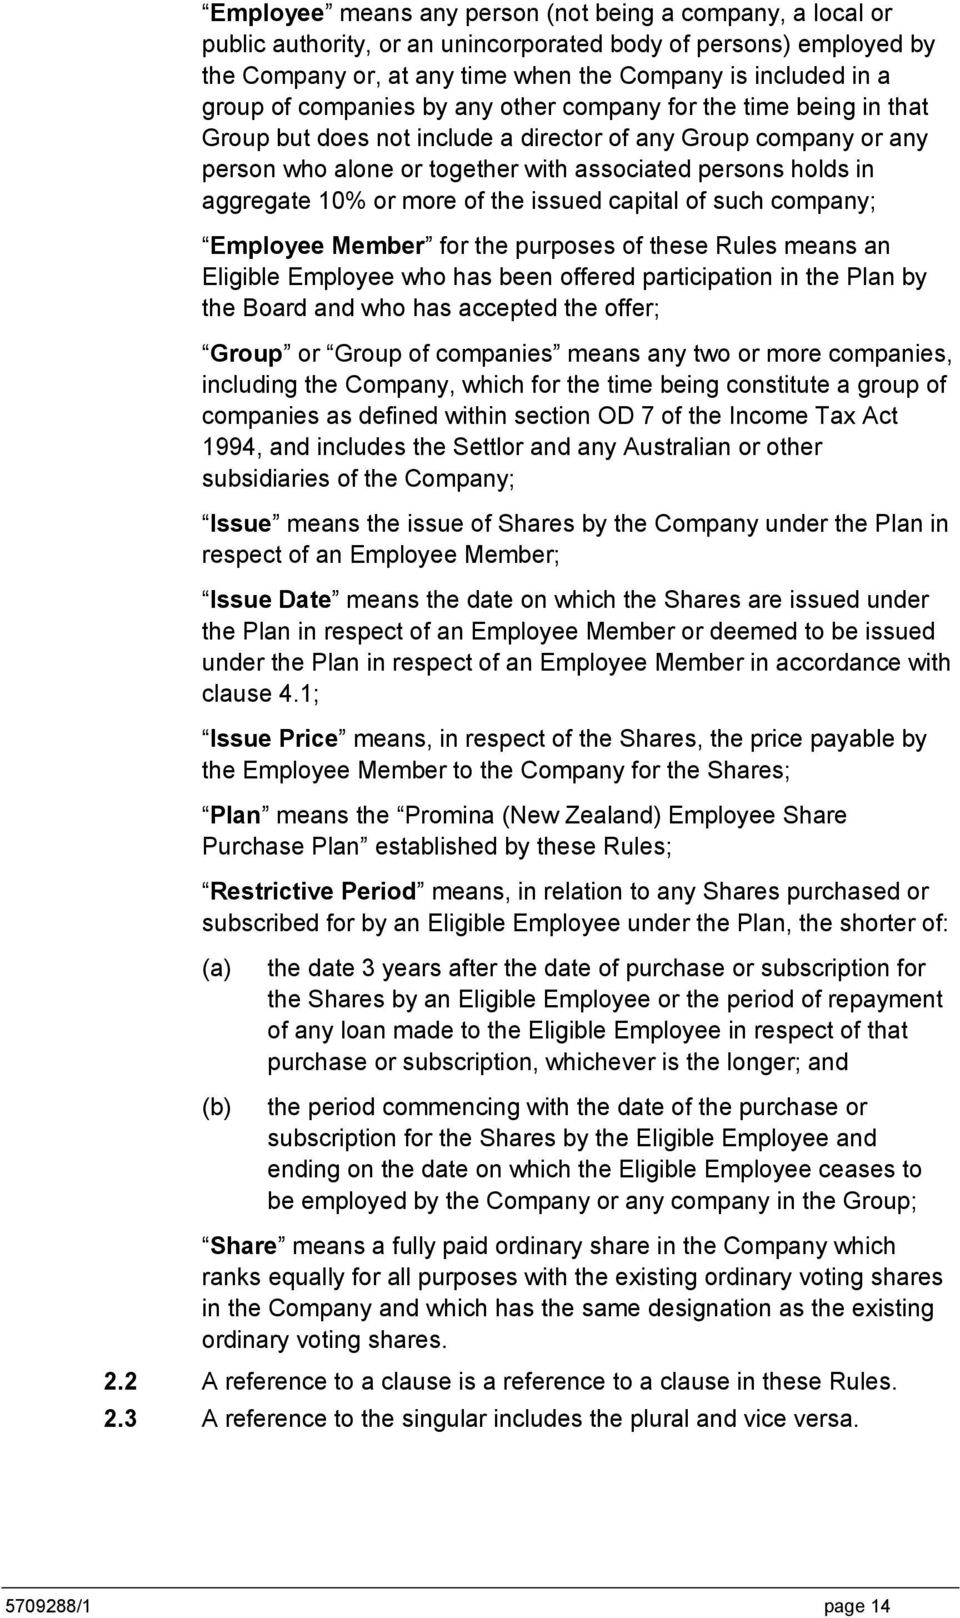 or more of the issued capital of such company; Employee Member for the purposes of these Rules means an Eligible Employee who has been offered participation in the Plan by the Board and who has